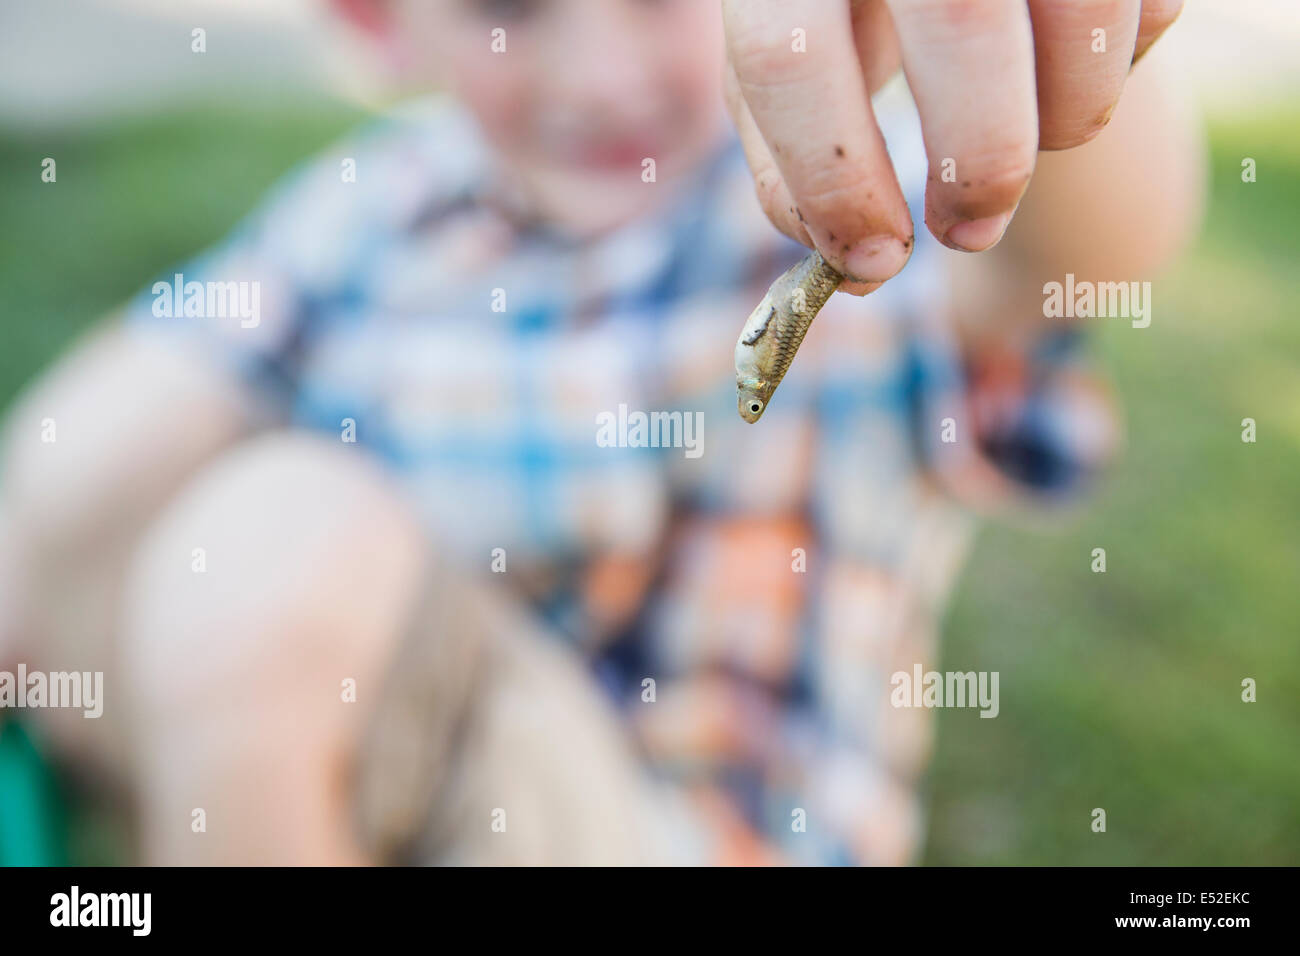 A young boy holding a small fish in his fingers. - Stock Image